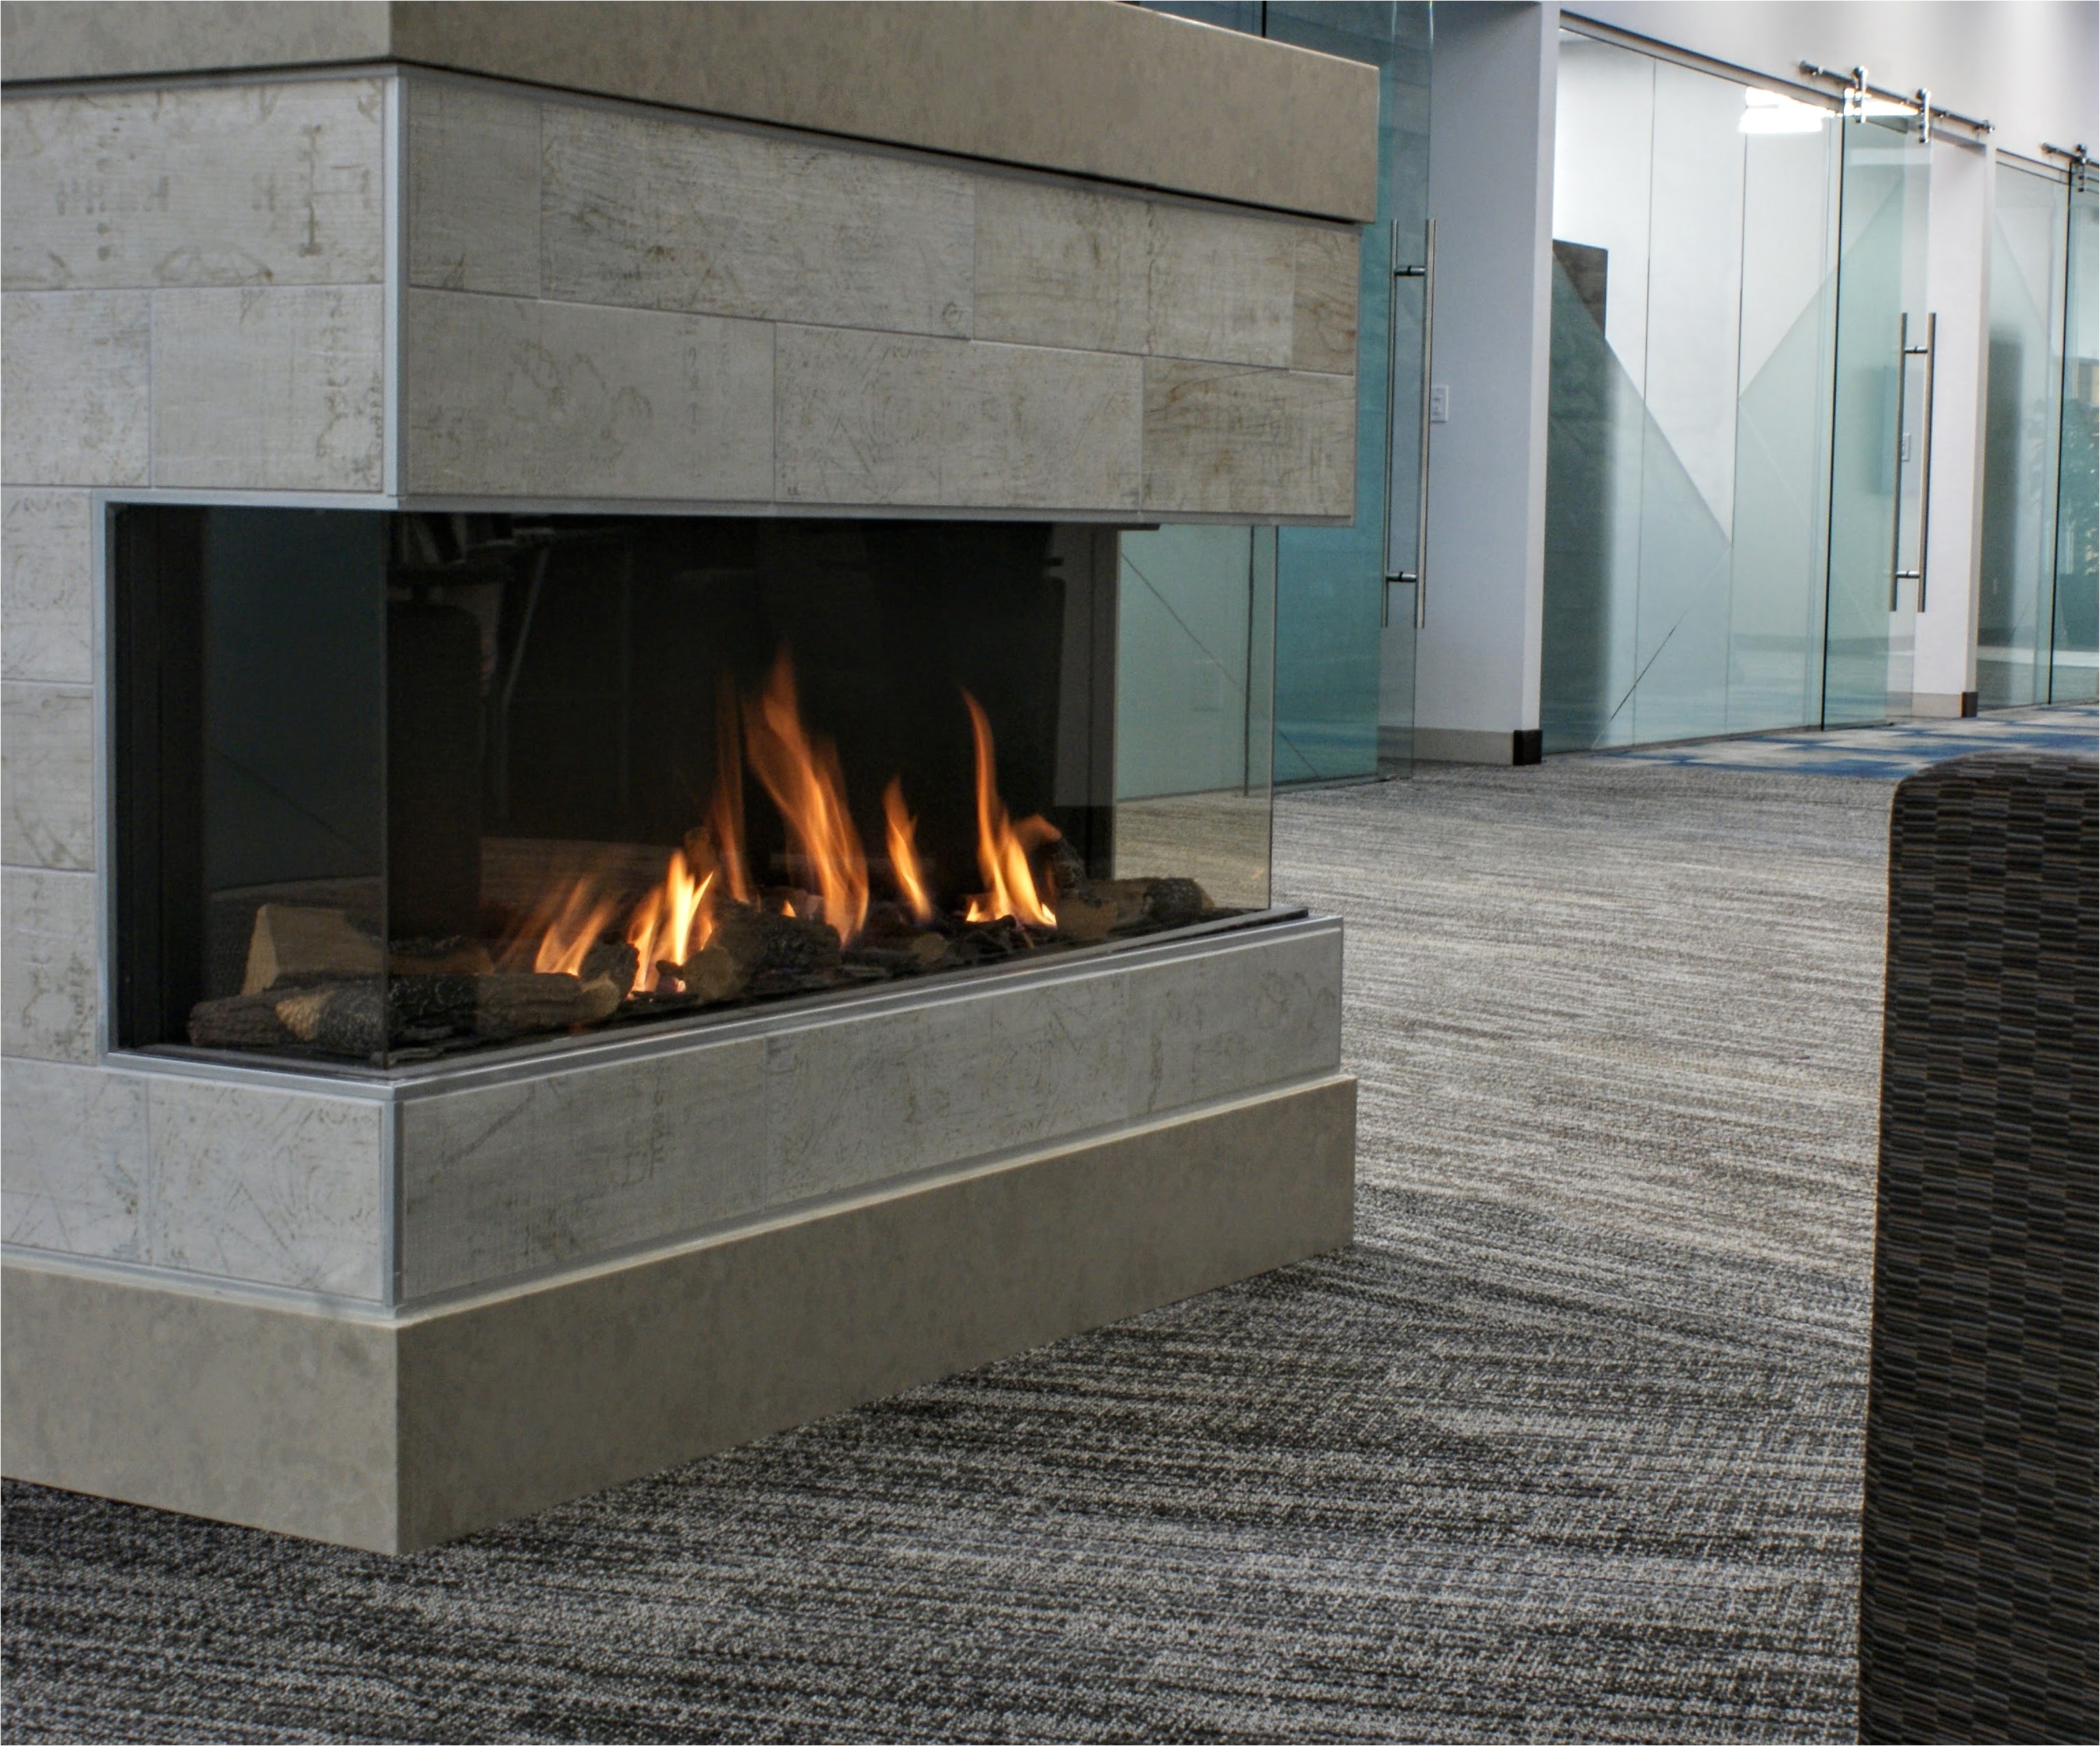 linear gas fireplace prices canada three sided gas fireplace price lovely nantucket energy gas of linear gas fireplace prices canada